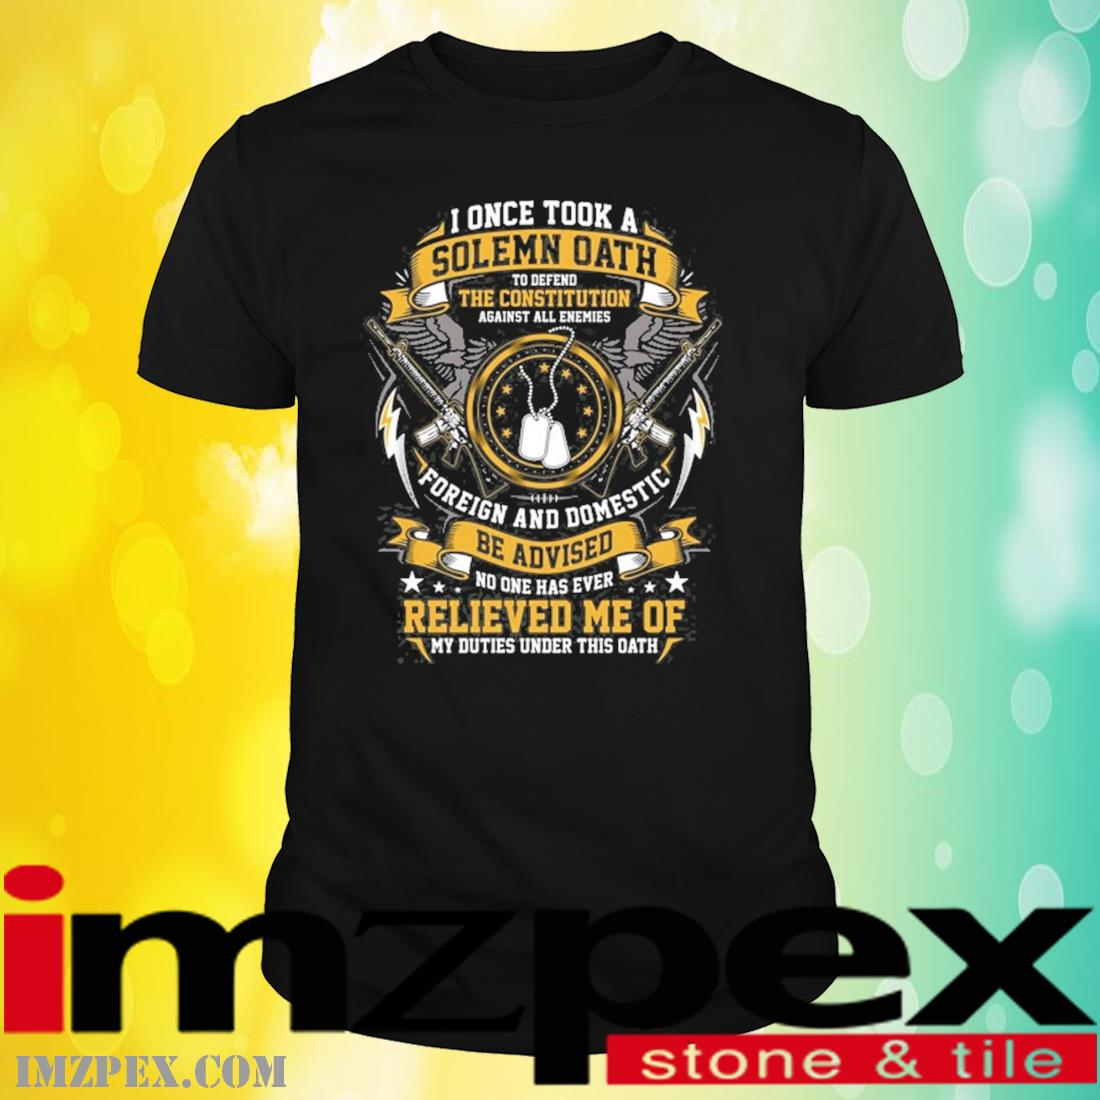 I Once Took A Solemn Oath Defend The Constitution Foreign And Domestic Be Advised Relieved Me Veteran Shirt